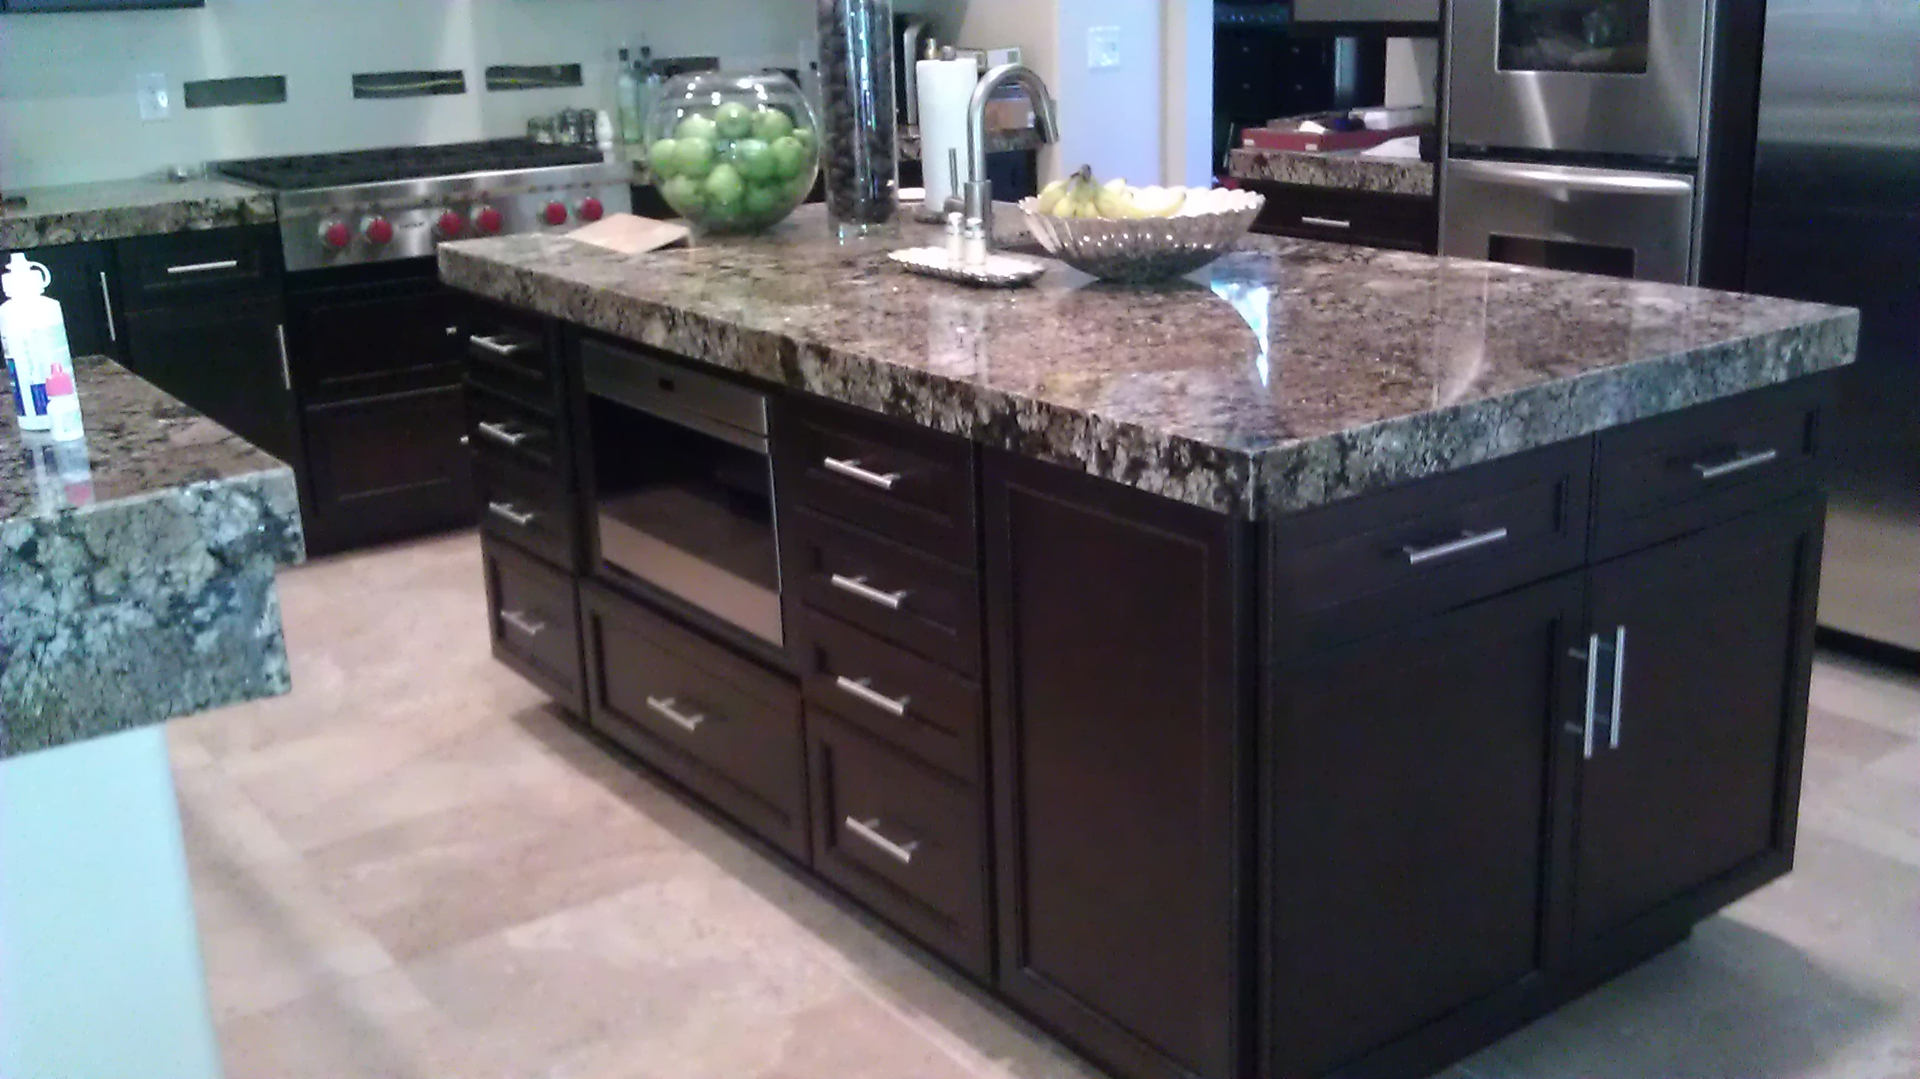 Kitchen Cabinets Las Vegas On Kitchen Kitchen Cabinets Las Vegas Showroomartizen Full Access Cabinets